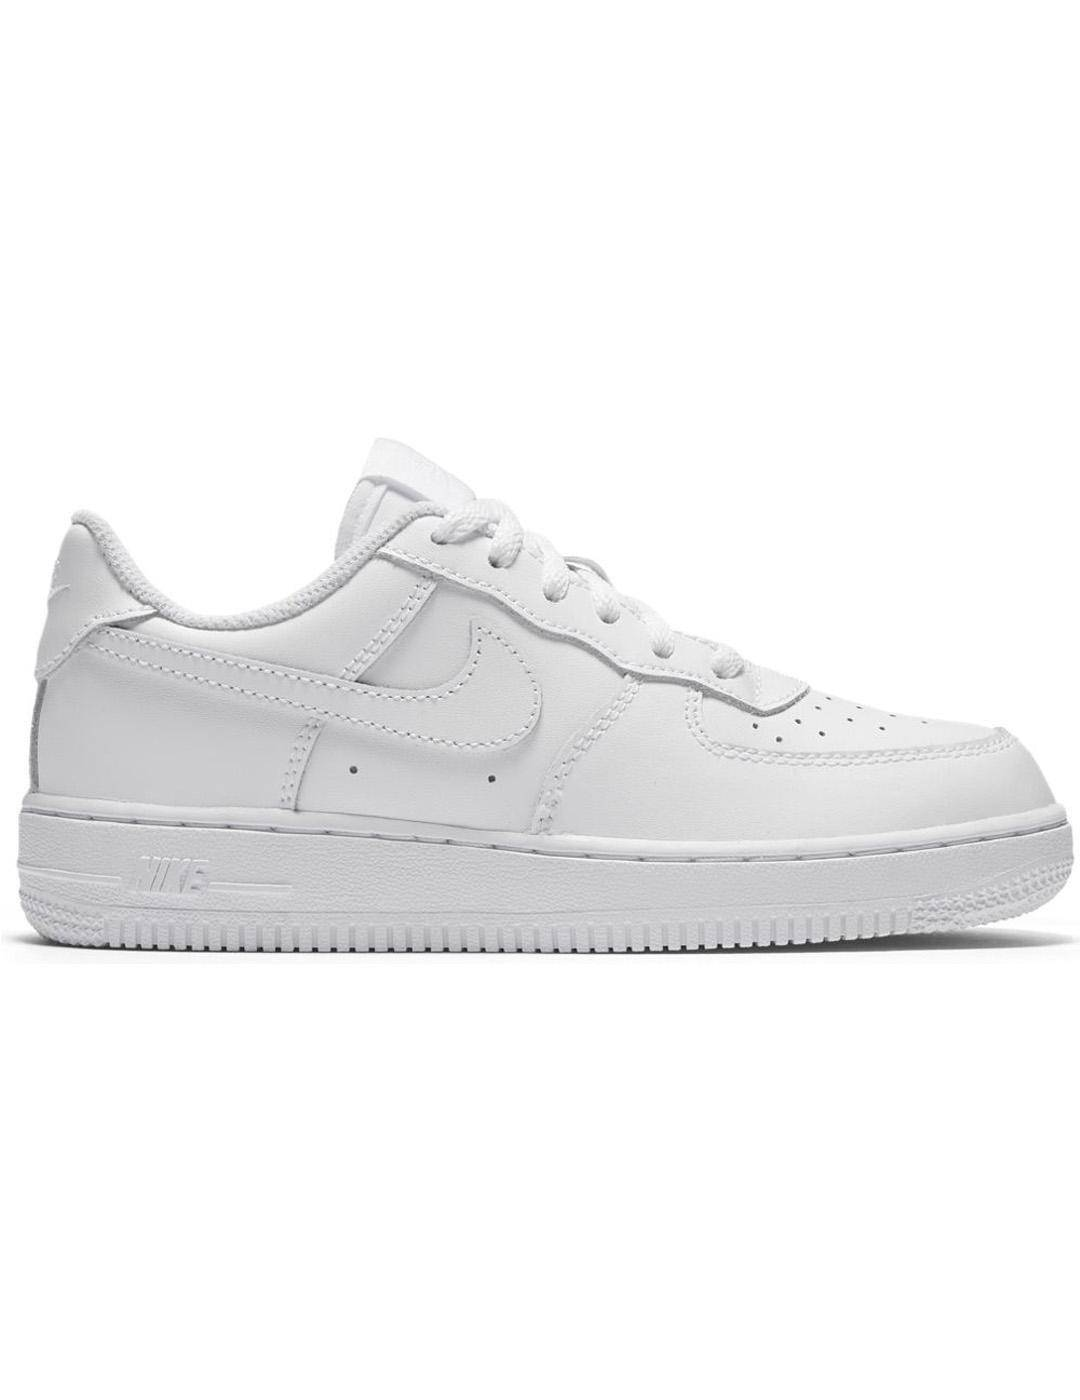 Nike Air Force 1 (Ps) Blanco Niño/a - 31